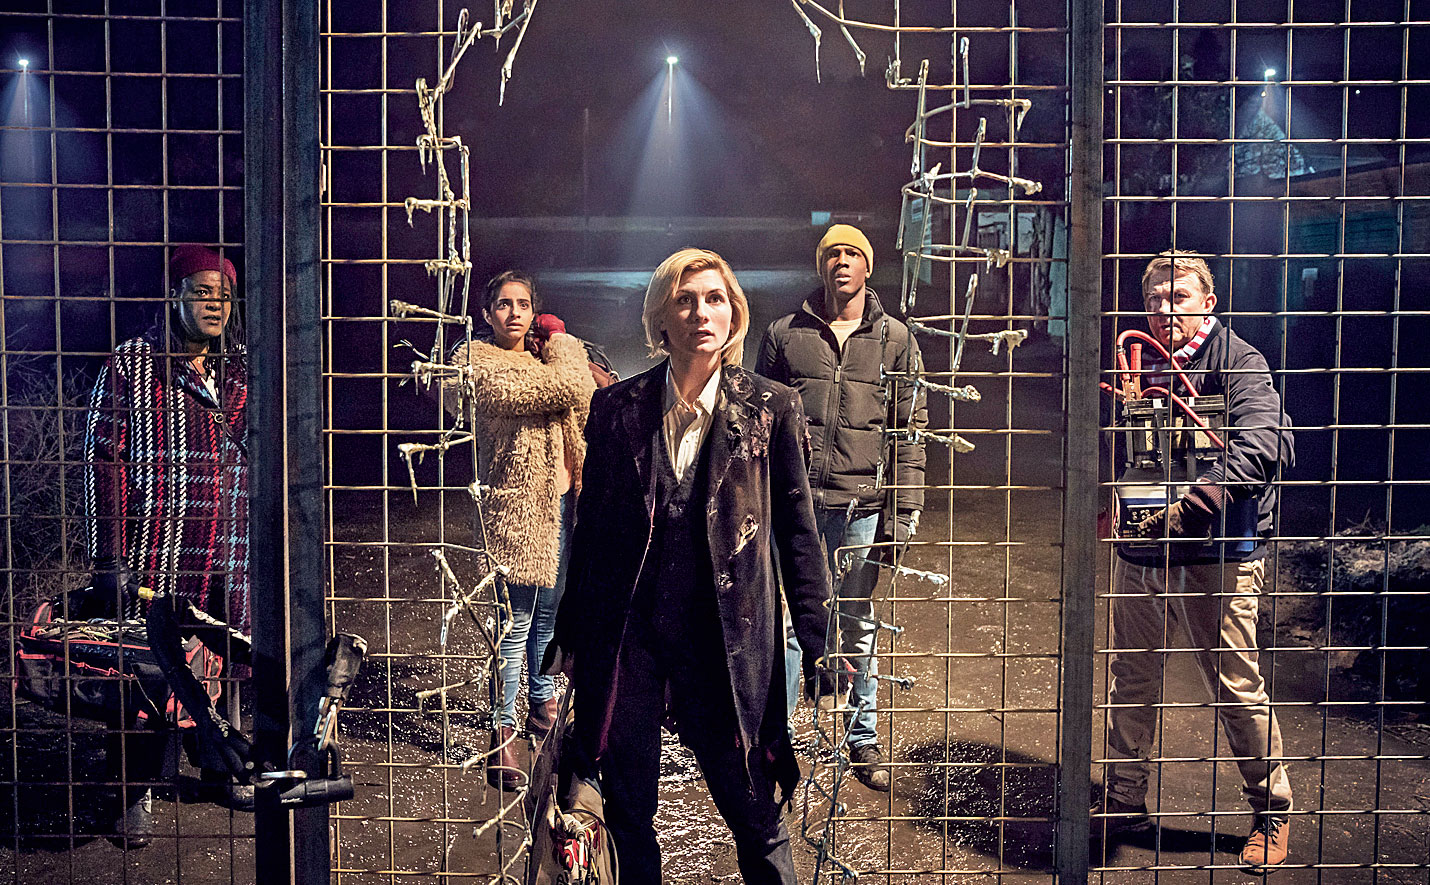 Grace, Yaz, The Doctor, Ryan and Graham in the first episode